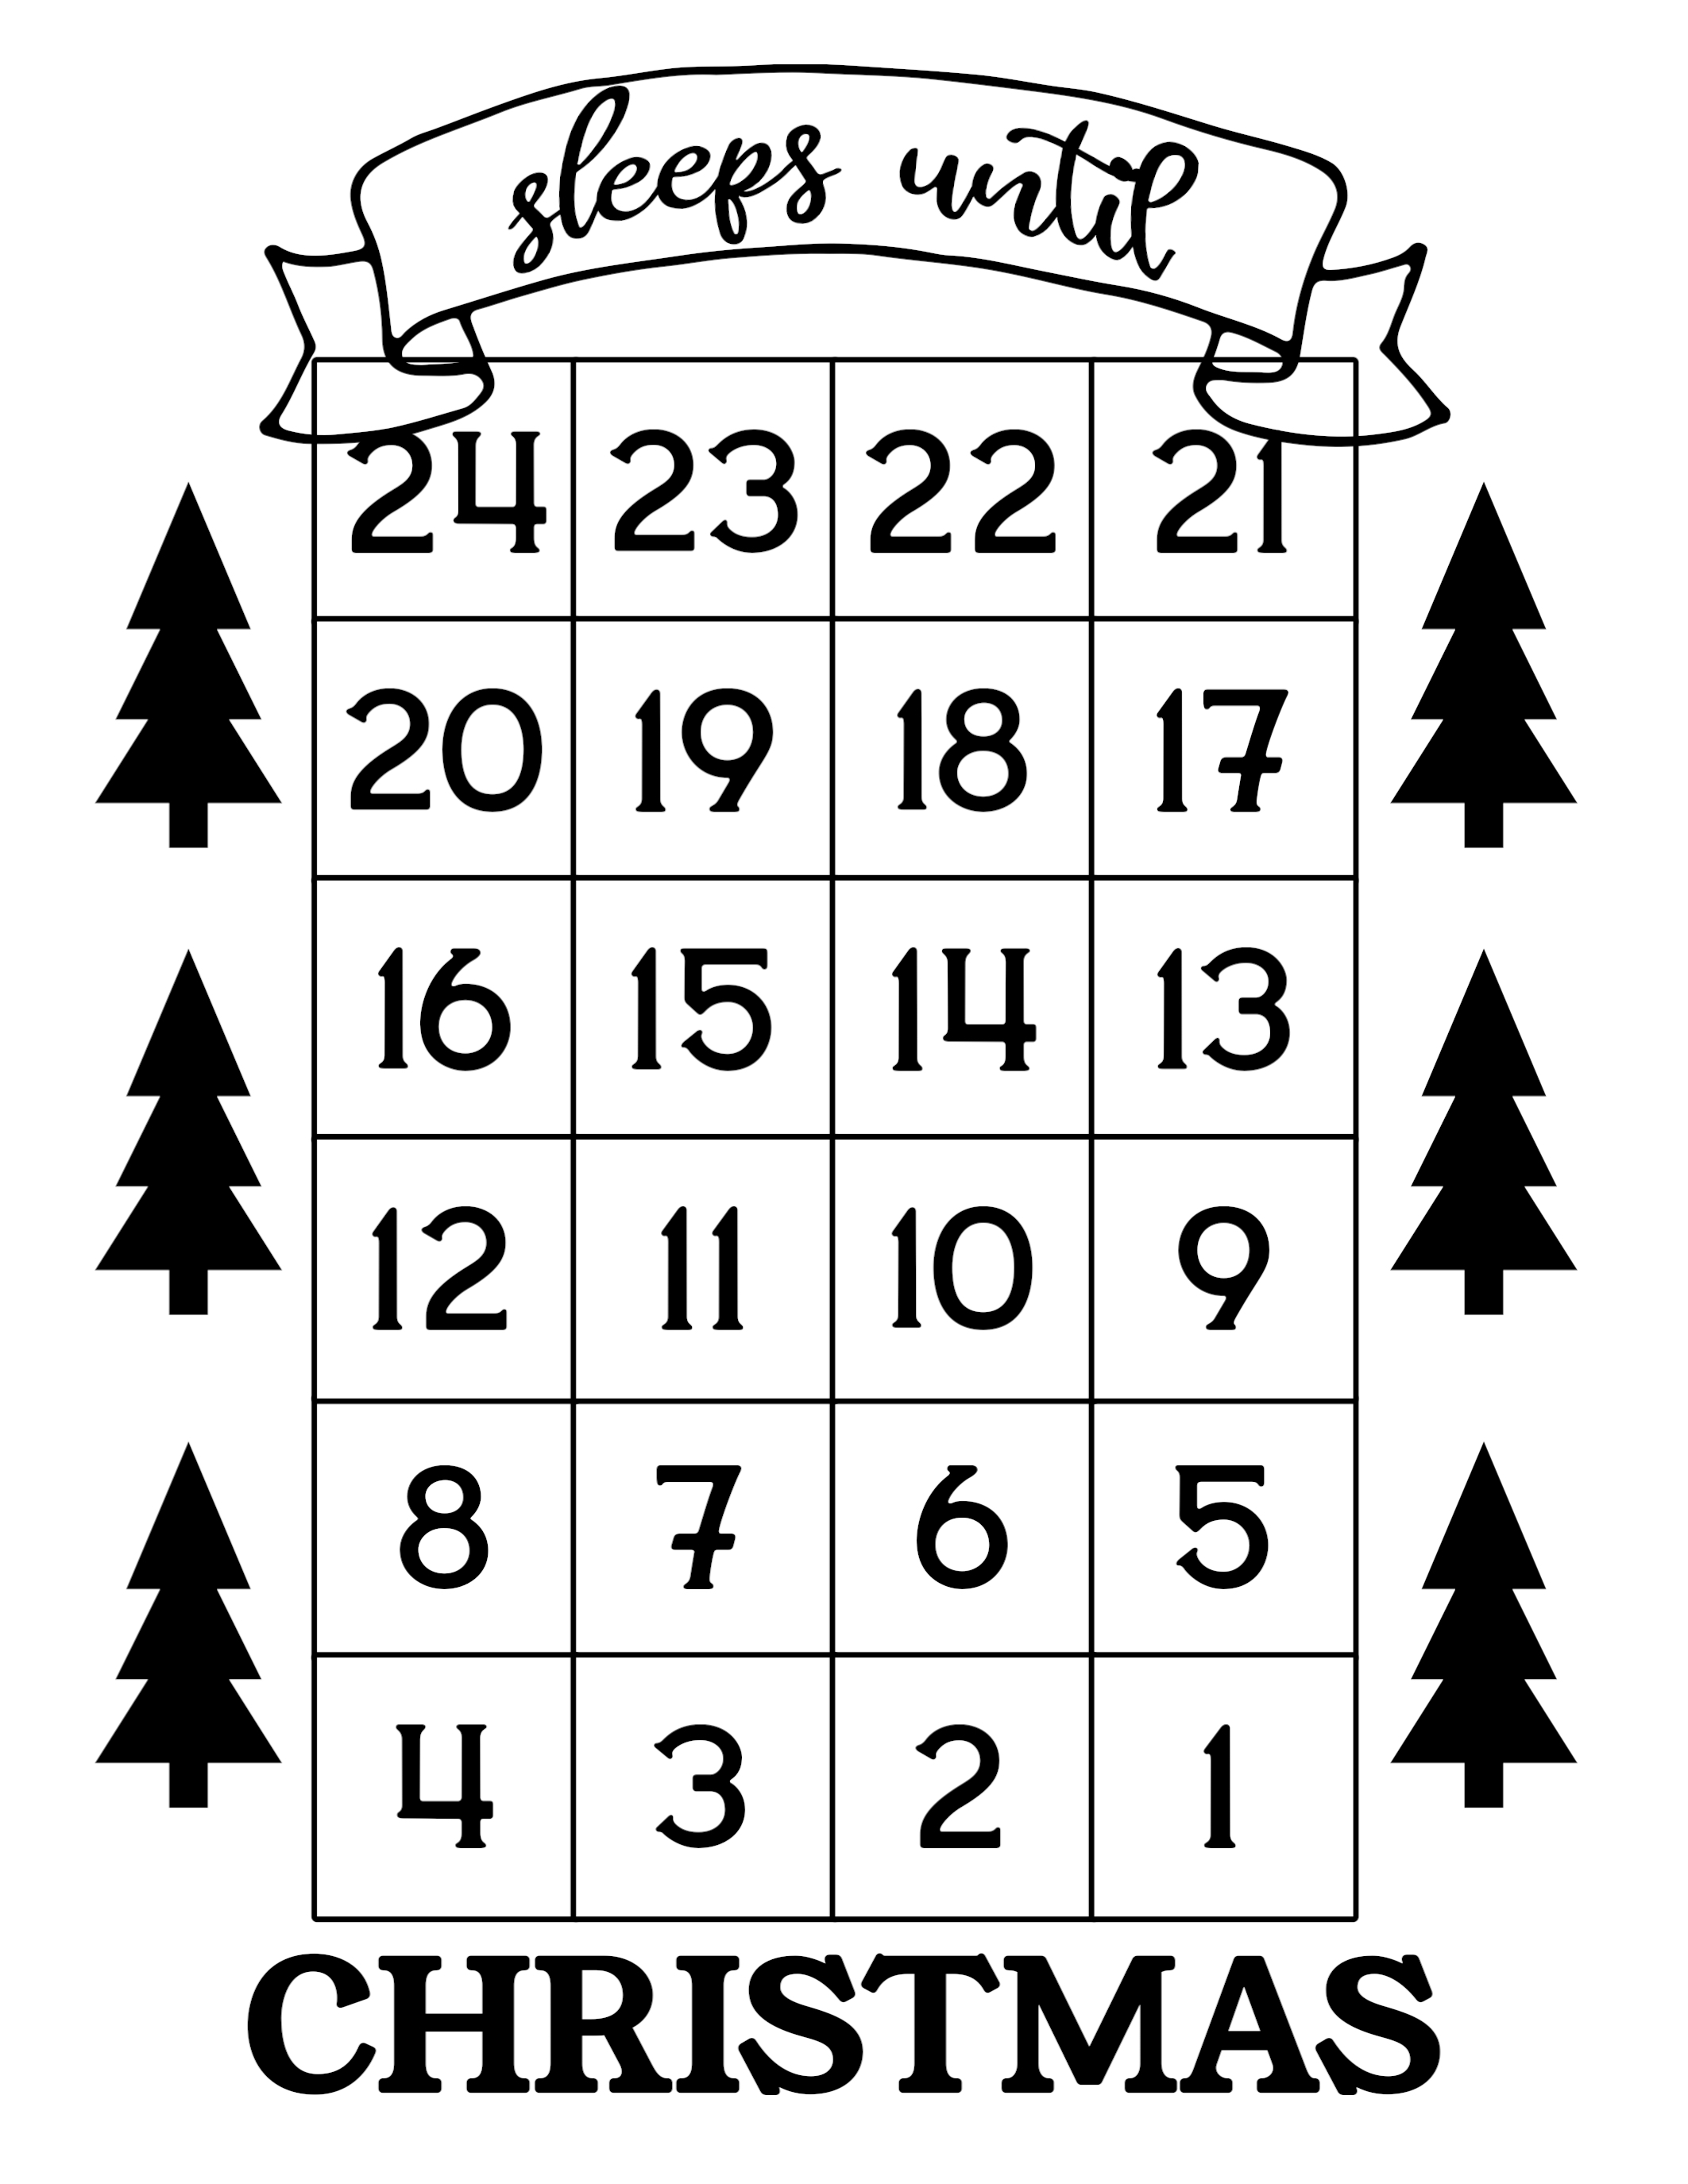 click the following links to print the how many days until christmas free printable - Number Of Days Until Christmas